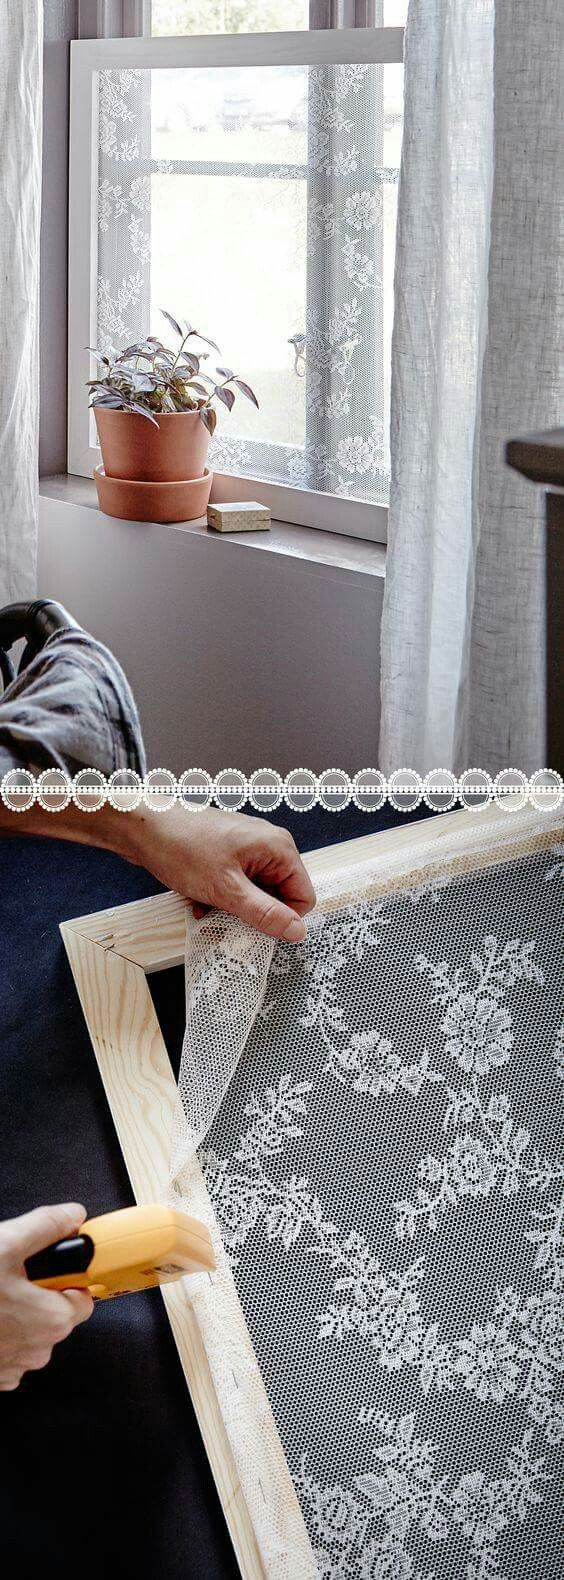 Crafty DIY Window screens made from lace